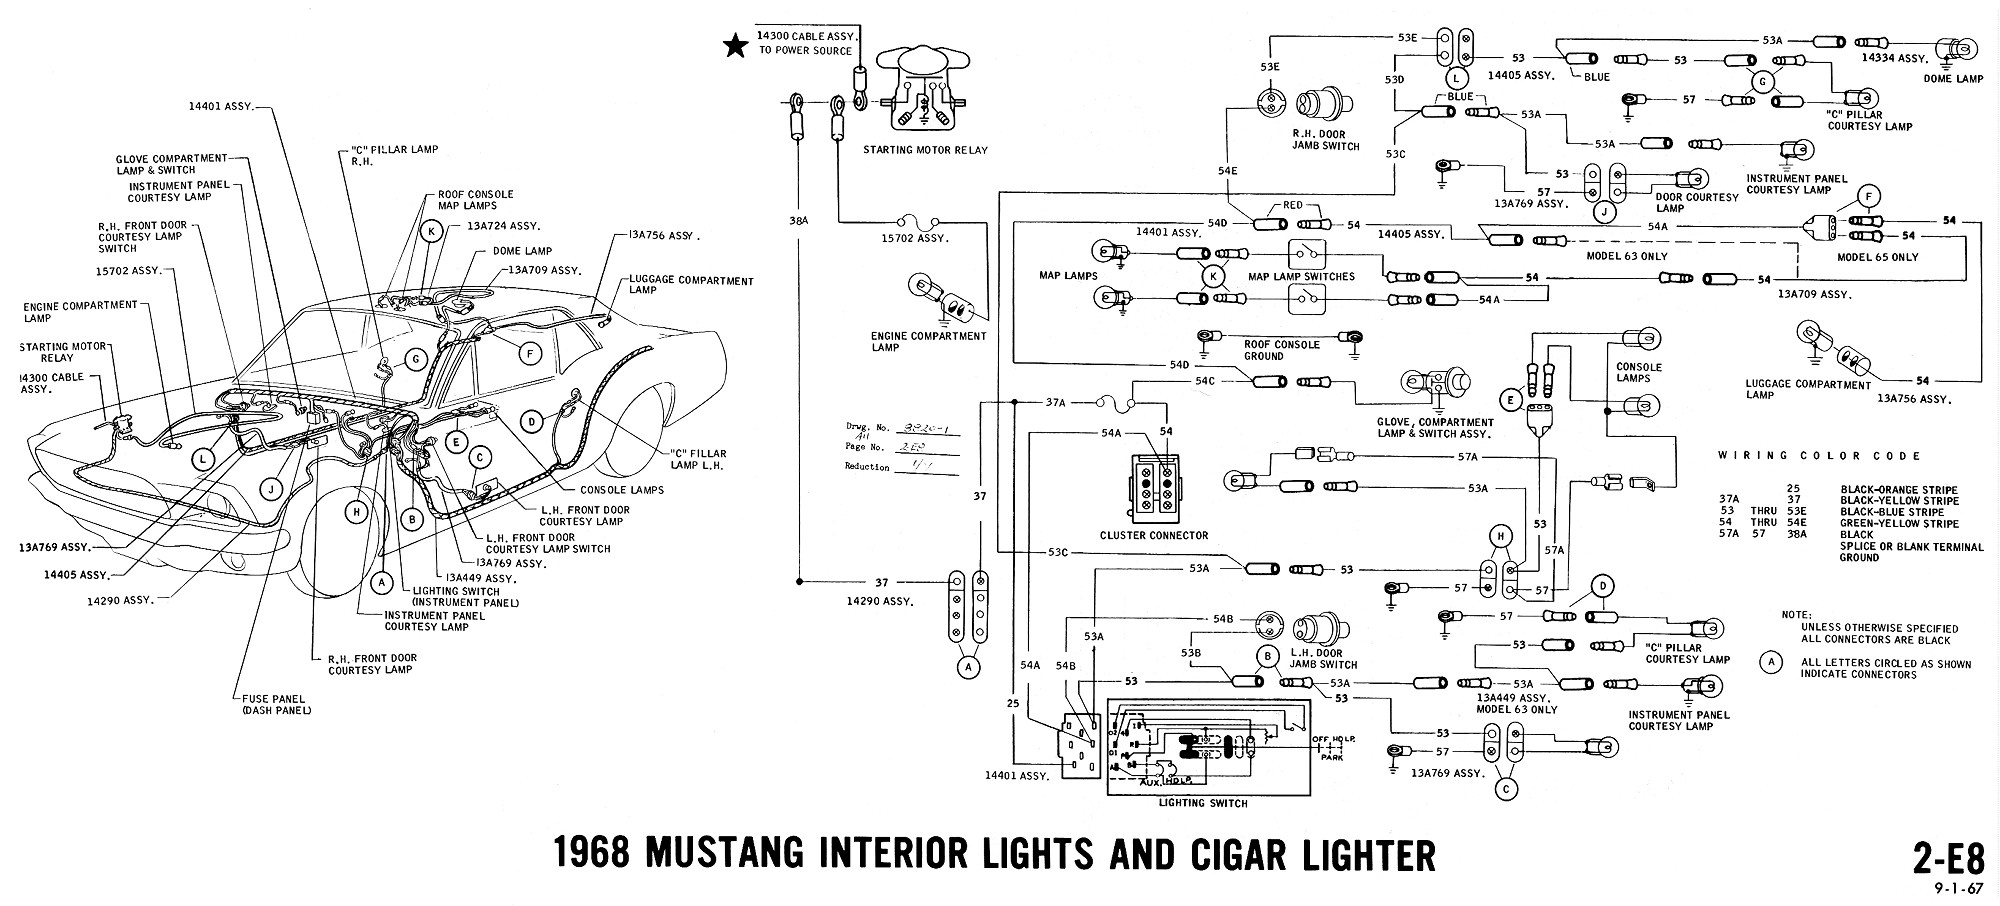 1965 Mustang Steering Wheel Wiring Diagram - Wiring Diagrams